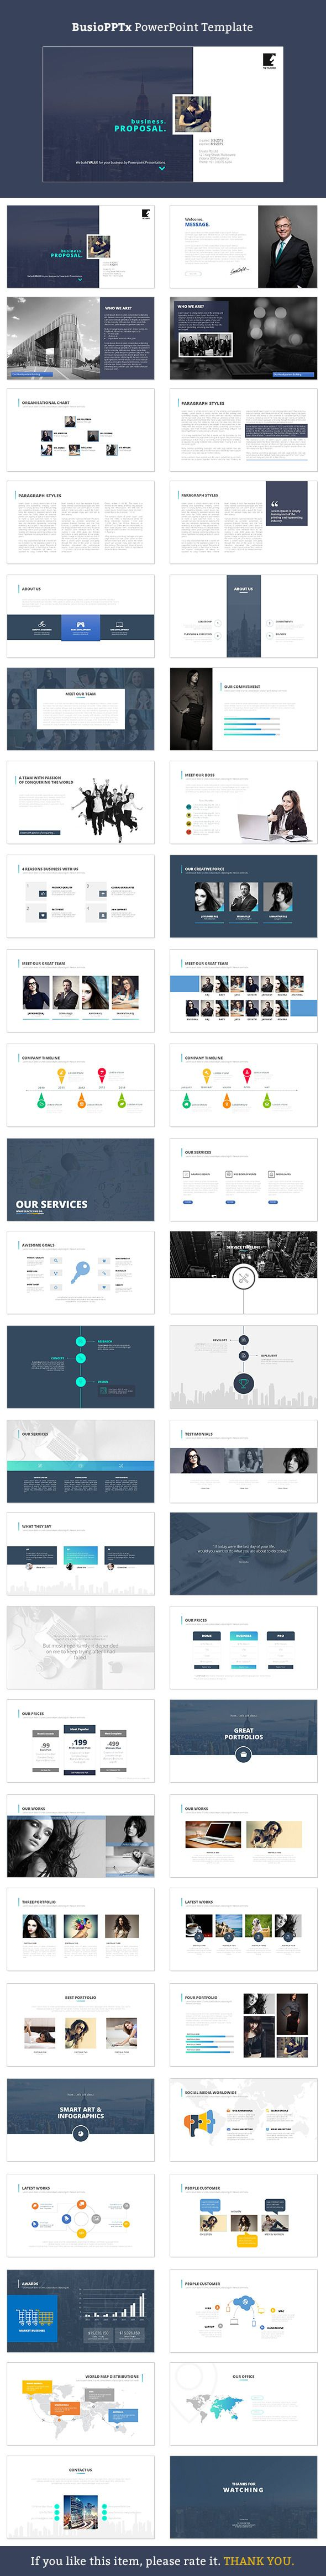 Busio PowerPoint - Business PowerPoint Templates